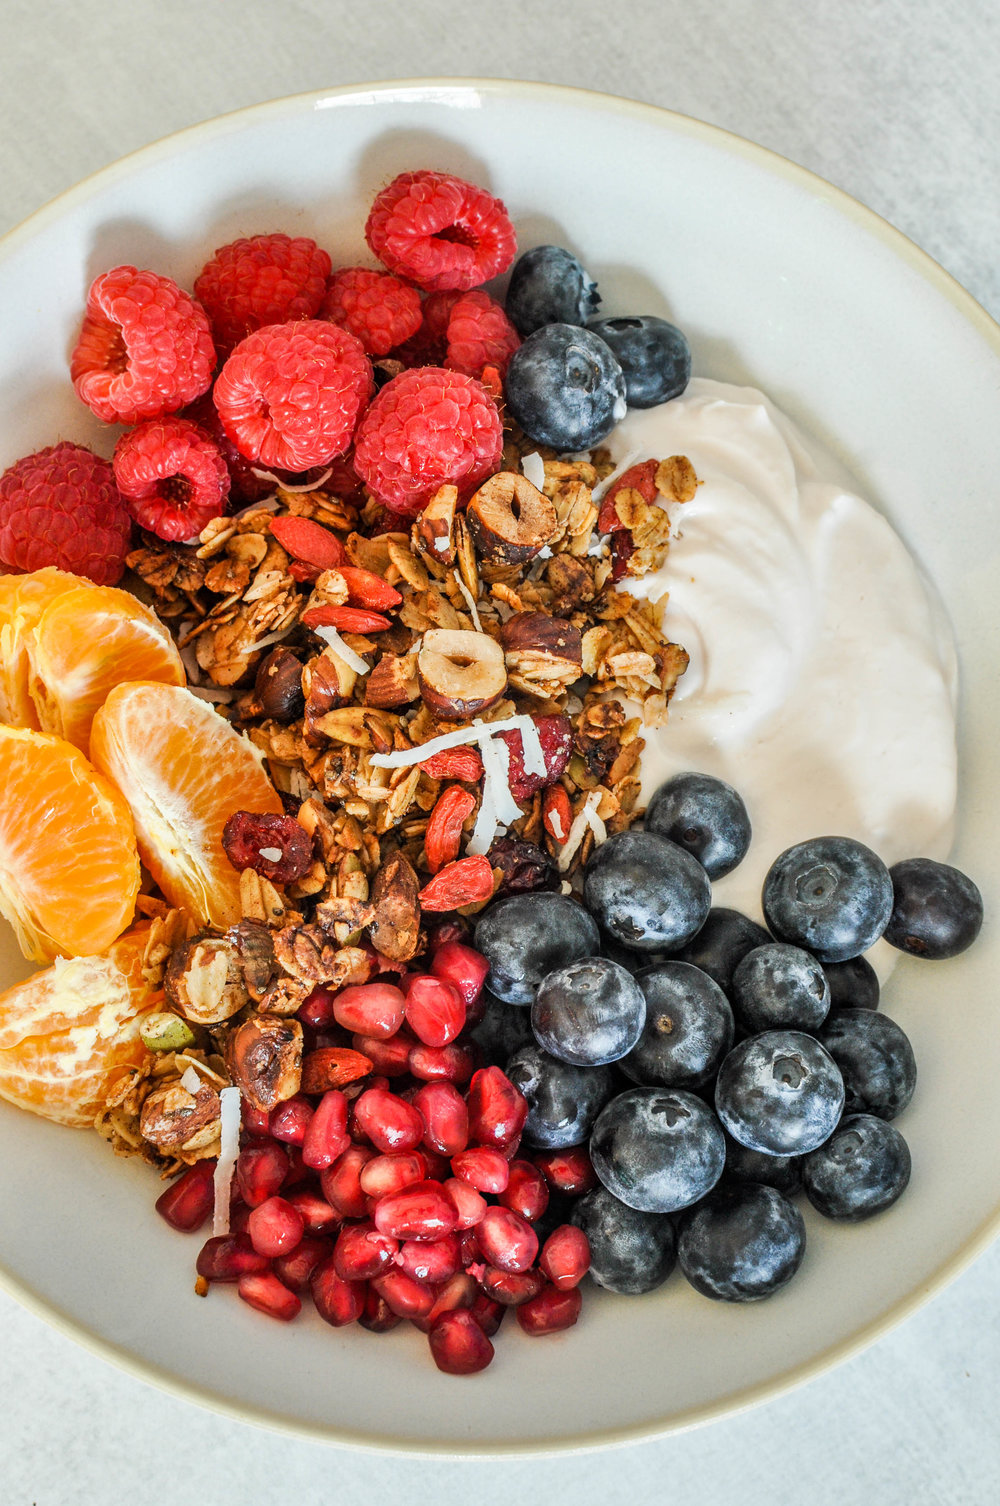 Best Ever Homemade Granola Recipe. This delicious granola recipe is a healthier, homemade version of a delicious breakfast treat.